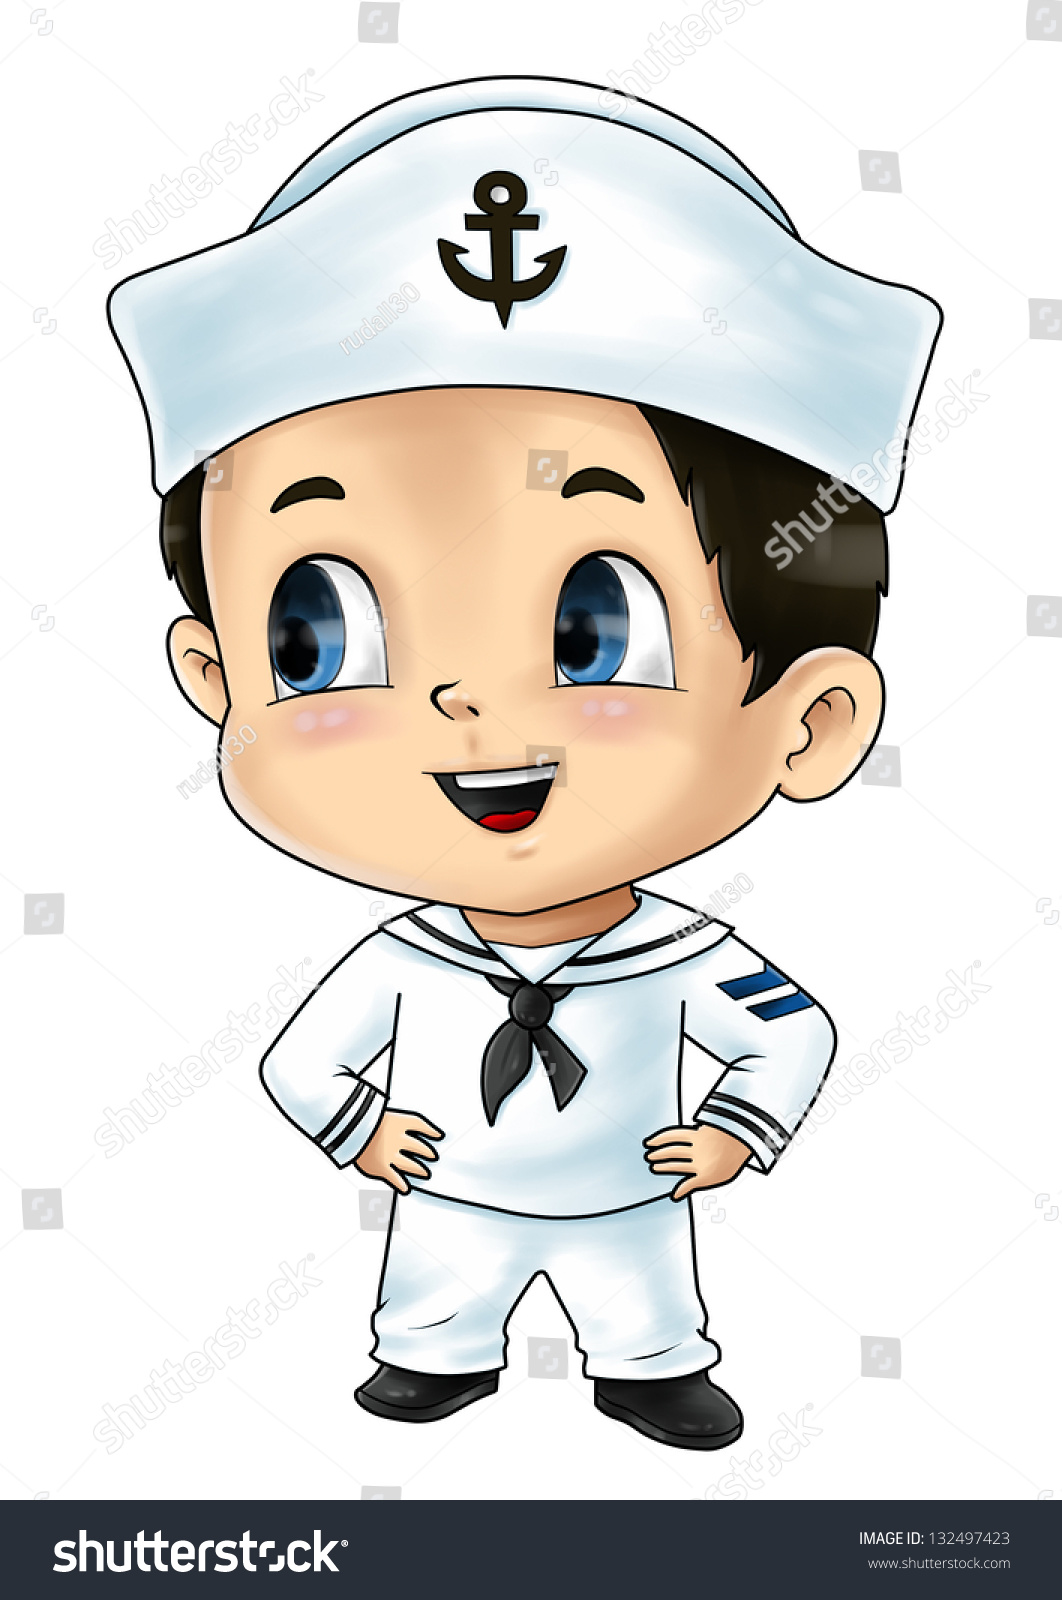 Stock Photo Cute Cartoon Illustration Of A Sailor